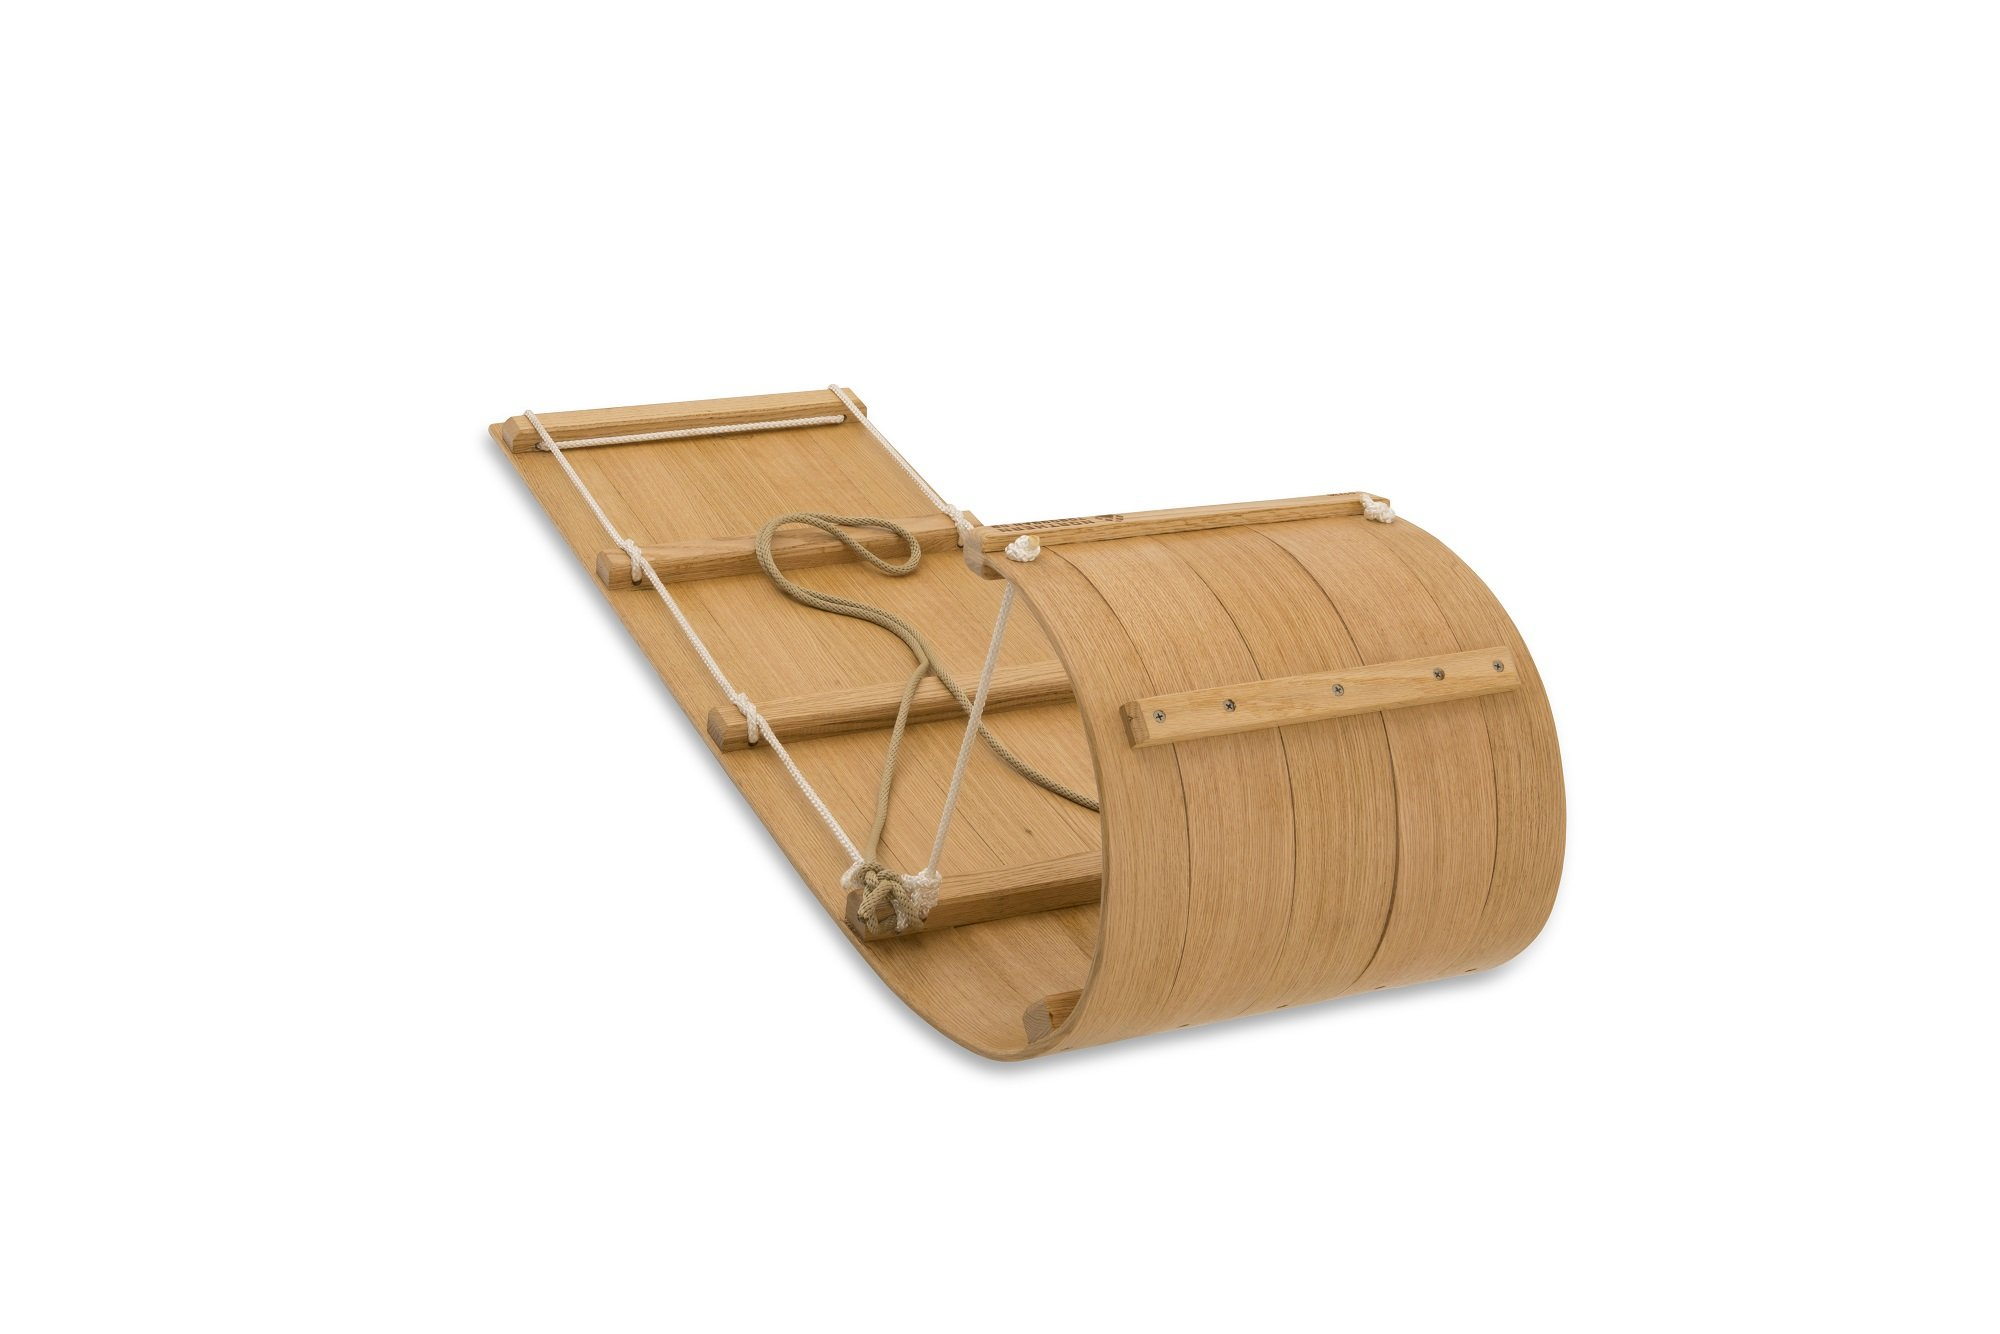 Little Classic Wood Toboggan - 4 foot Downhill Toboggan by Northern Toboggan Co